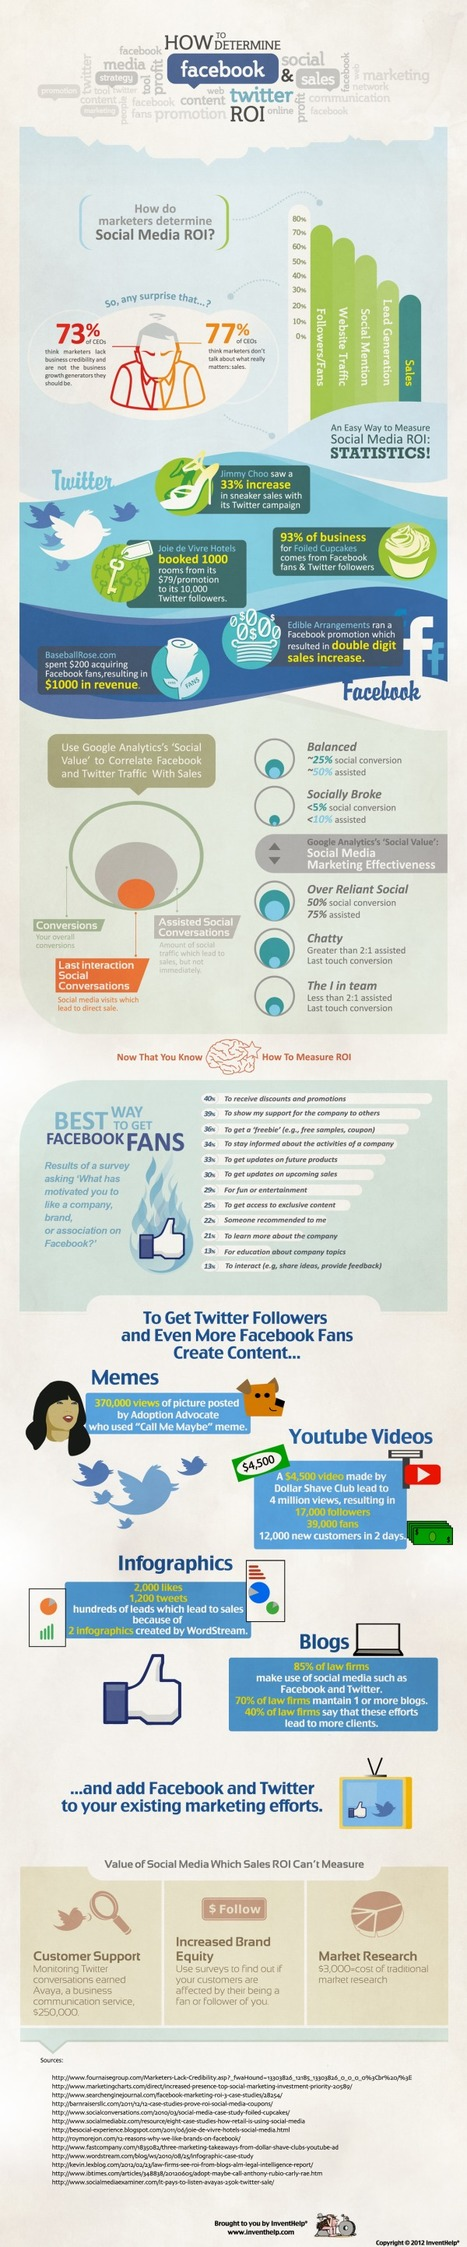 INFOGRAPHIC: Growing Your Social Media Presence | Social Media and Web Infographics hh | Scoop.it